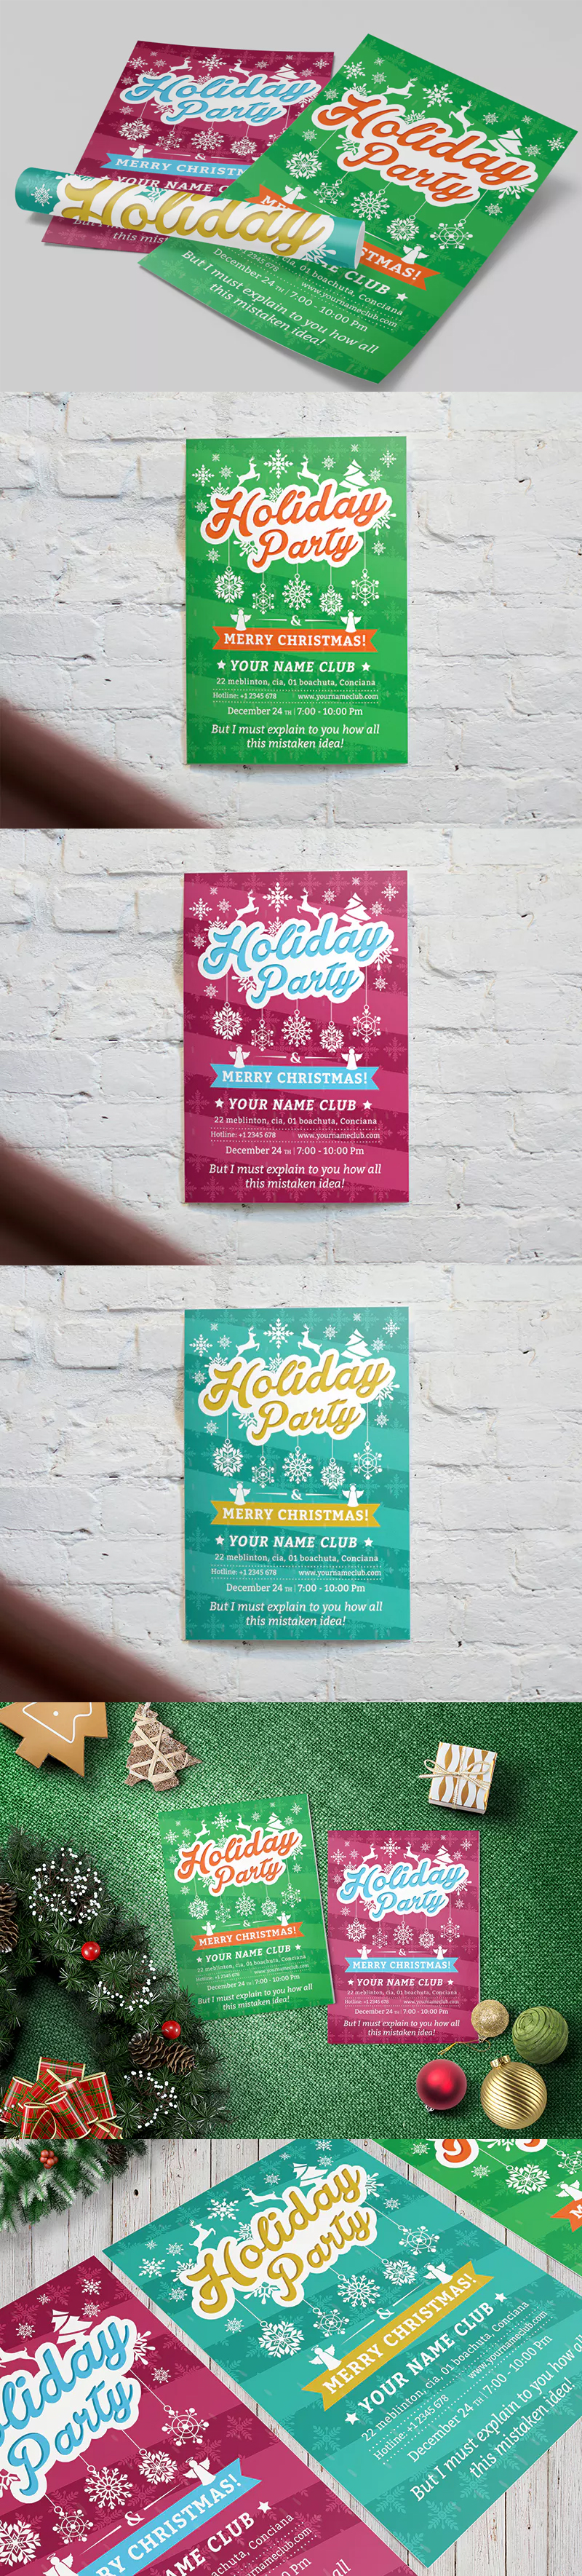 Holiday party flyer template psd a4 flyer design templates holiday party flyer template psd a4 maxwellsz